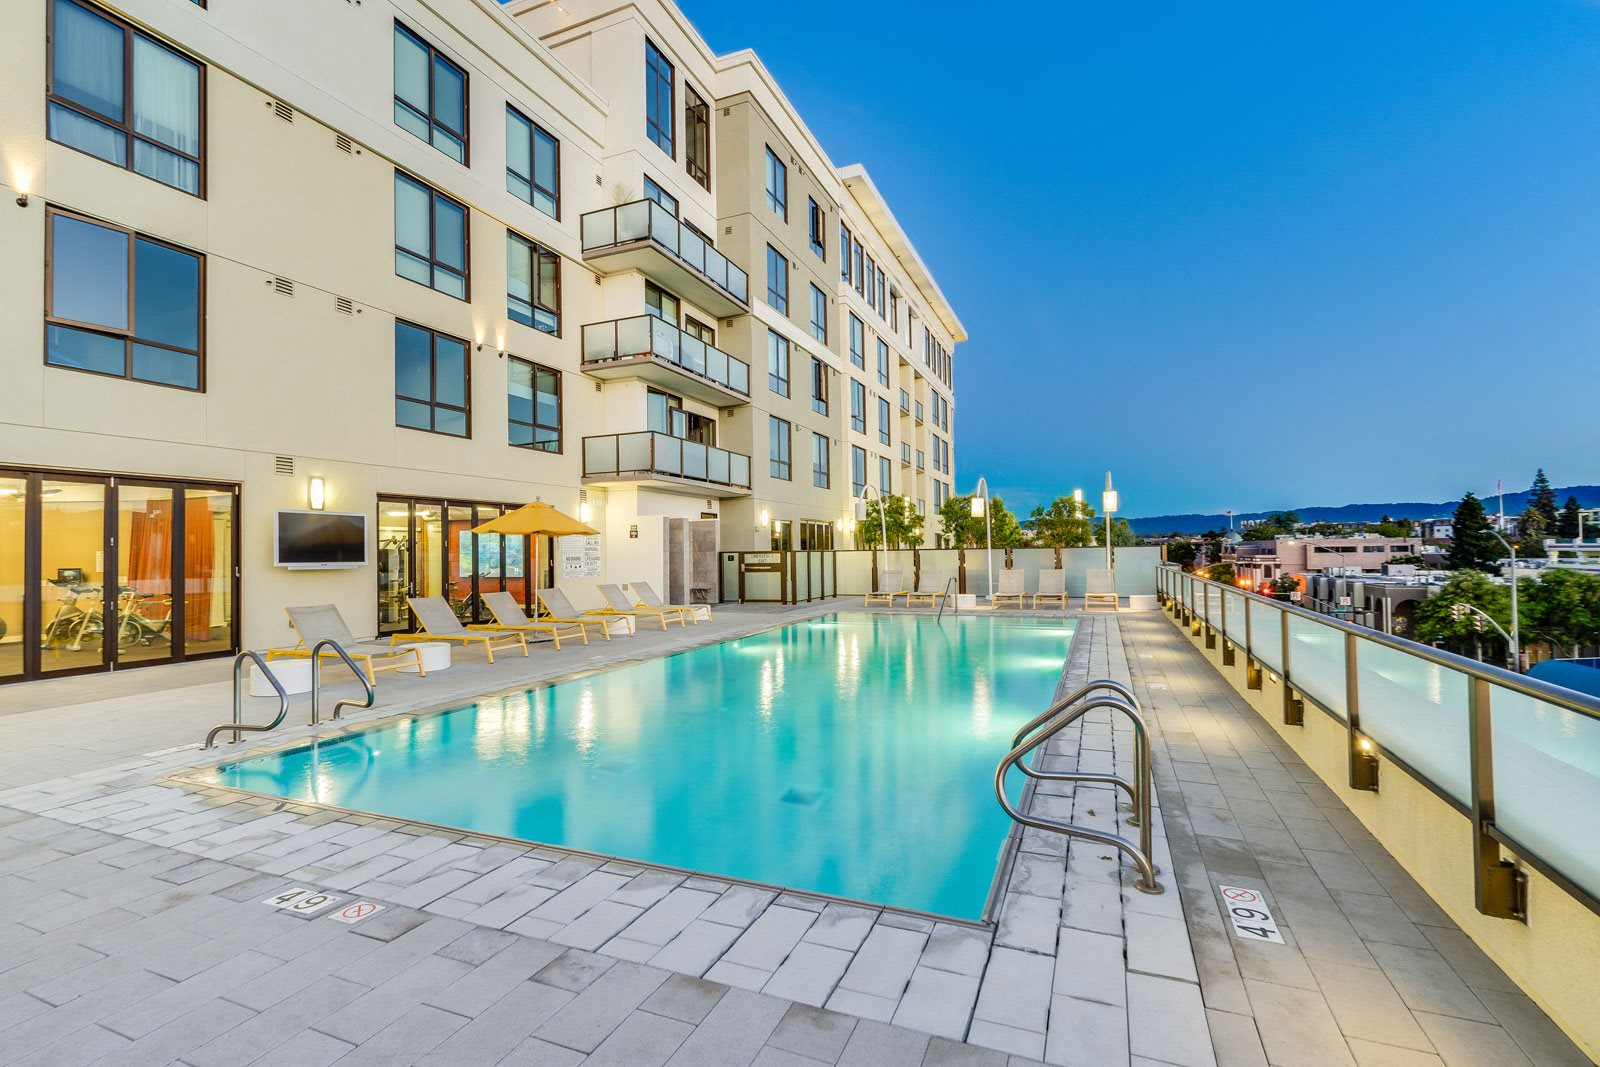 Resort-Style Rooftop Pool at The Marston by Windsor, Redwood City, 94063